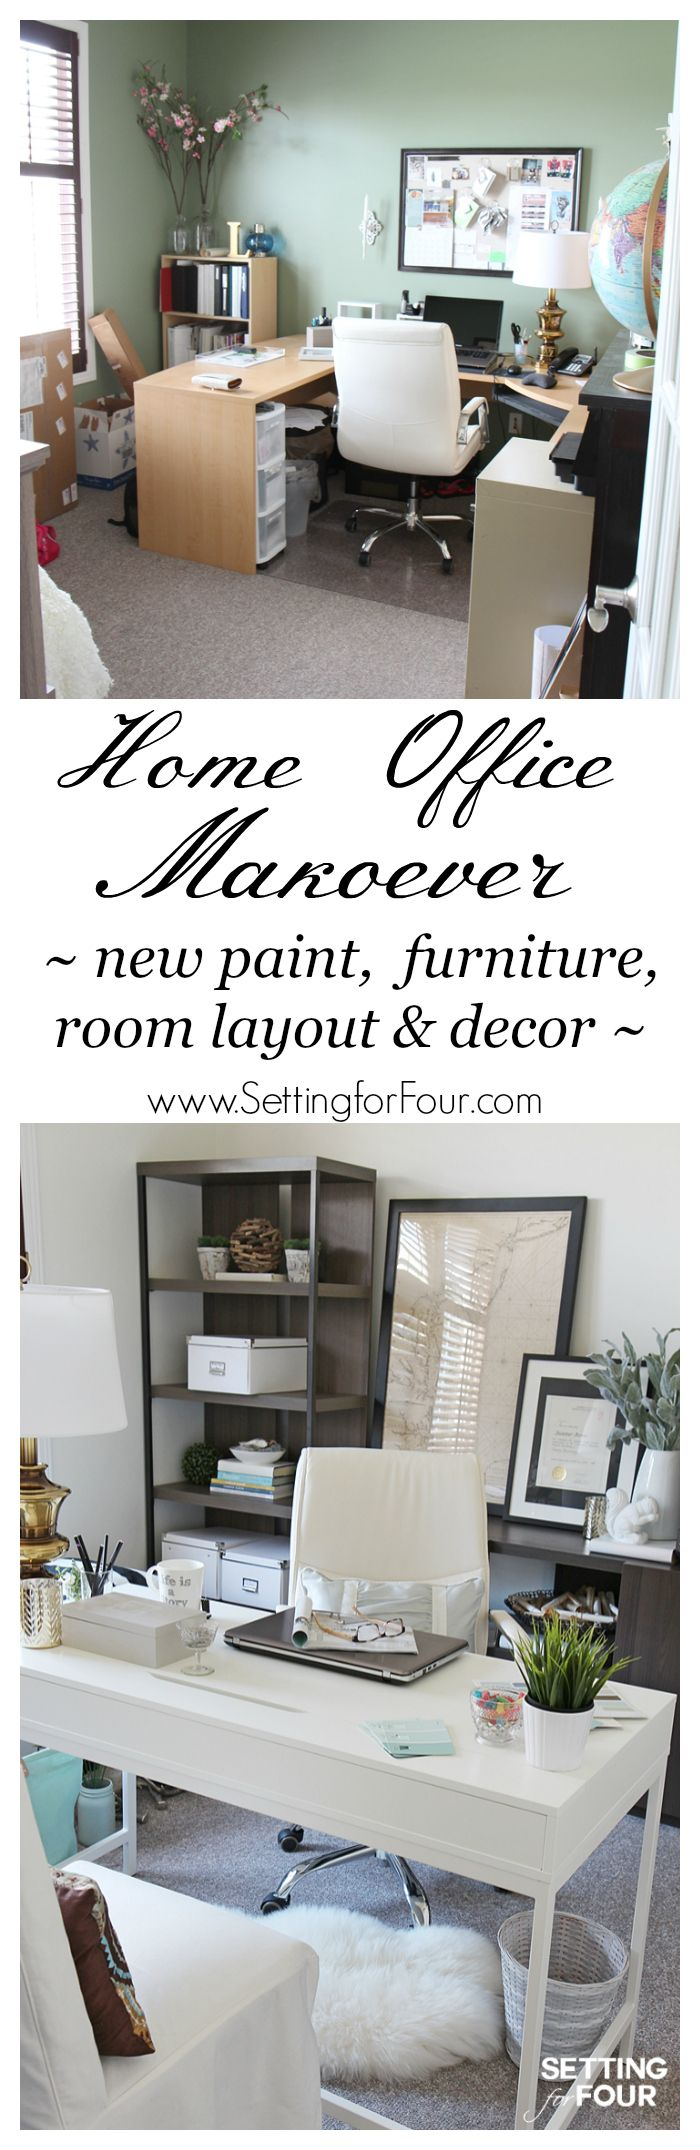 Best 25  Office makeover ideas on Pinterest   Diy home office furniture   Desk and Spare bedroom ideas. Best 25  Office makeover ideas on Pinterest   Diy home office